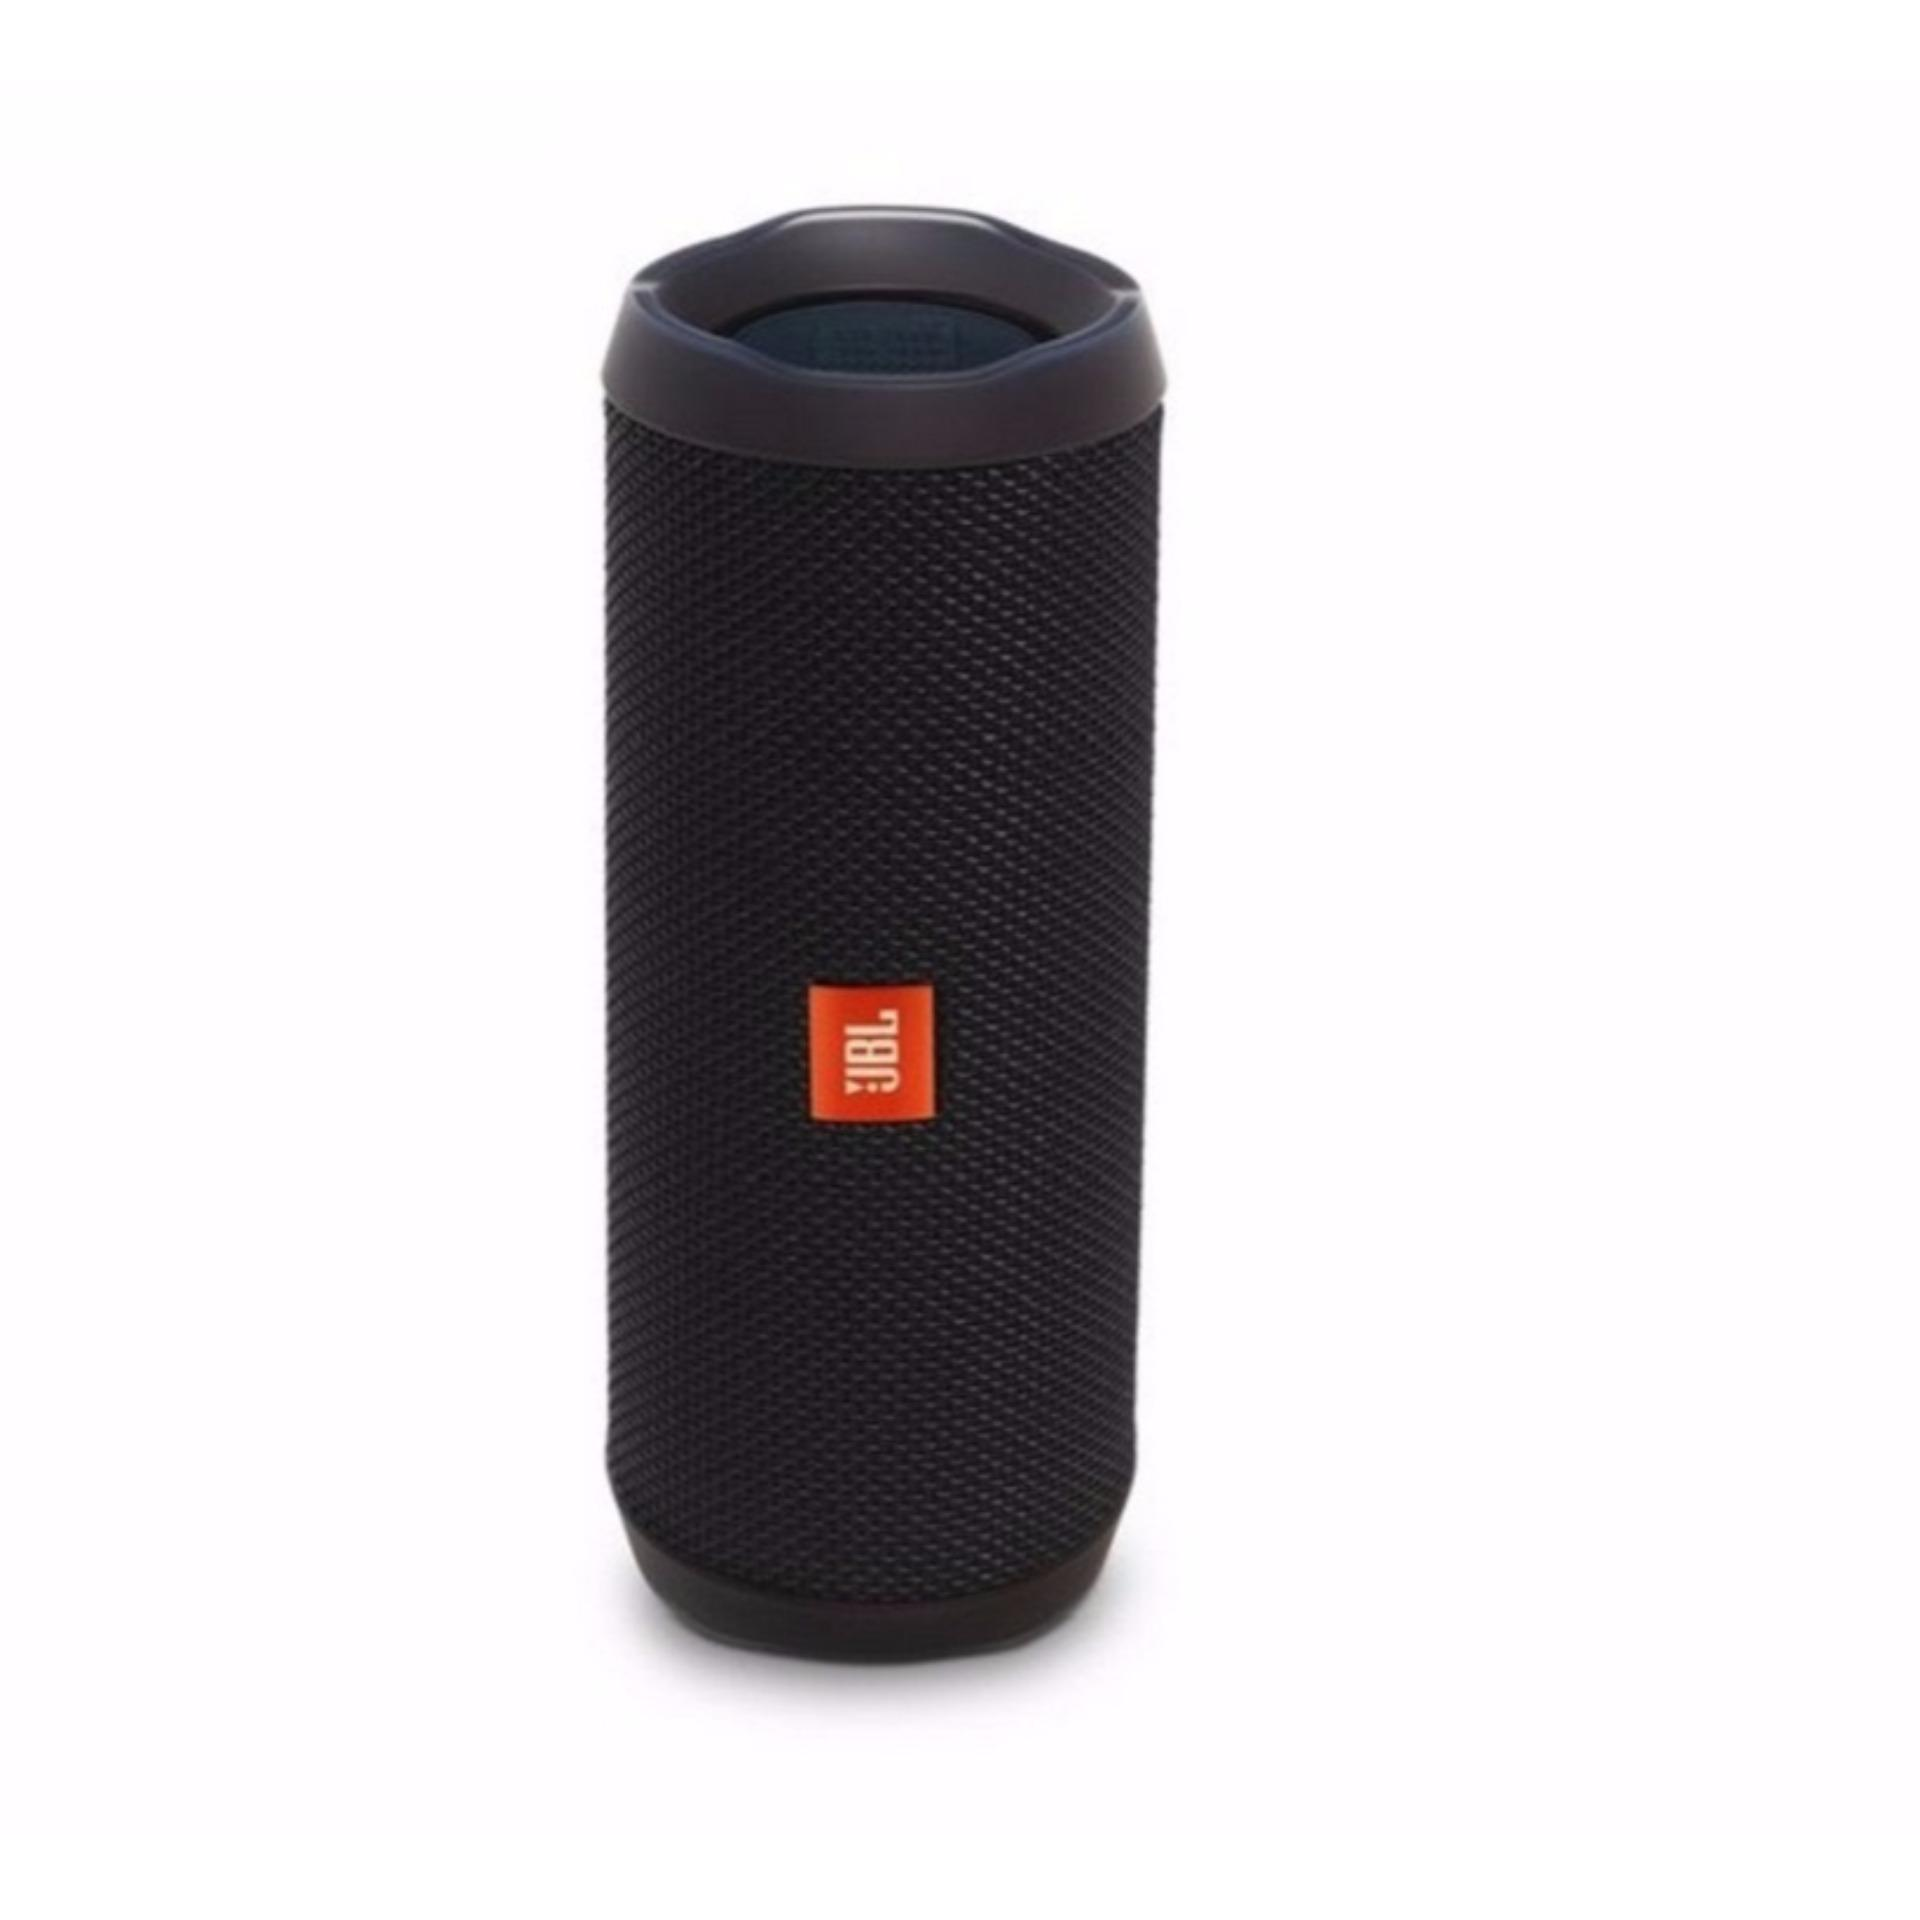 Beli Jbl Flip 4 Splashproof Portable Bluetooth Speaker Hitam Intl Lengkap